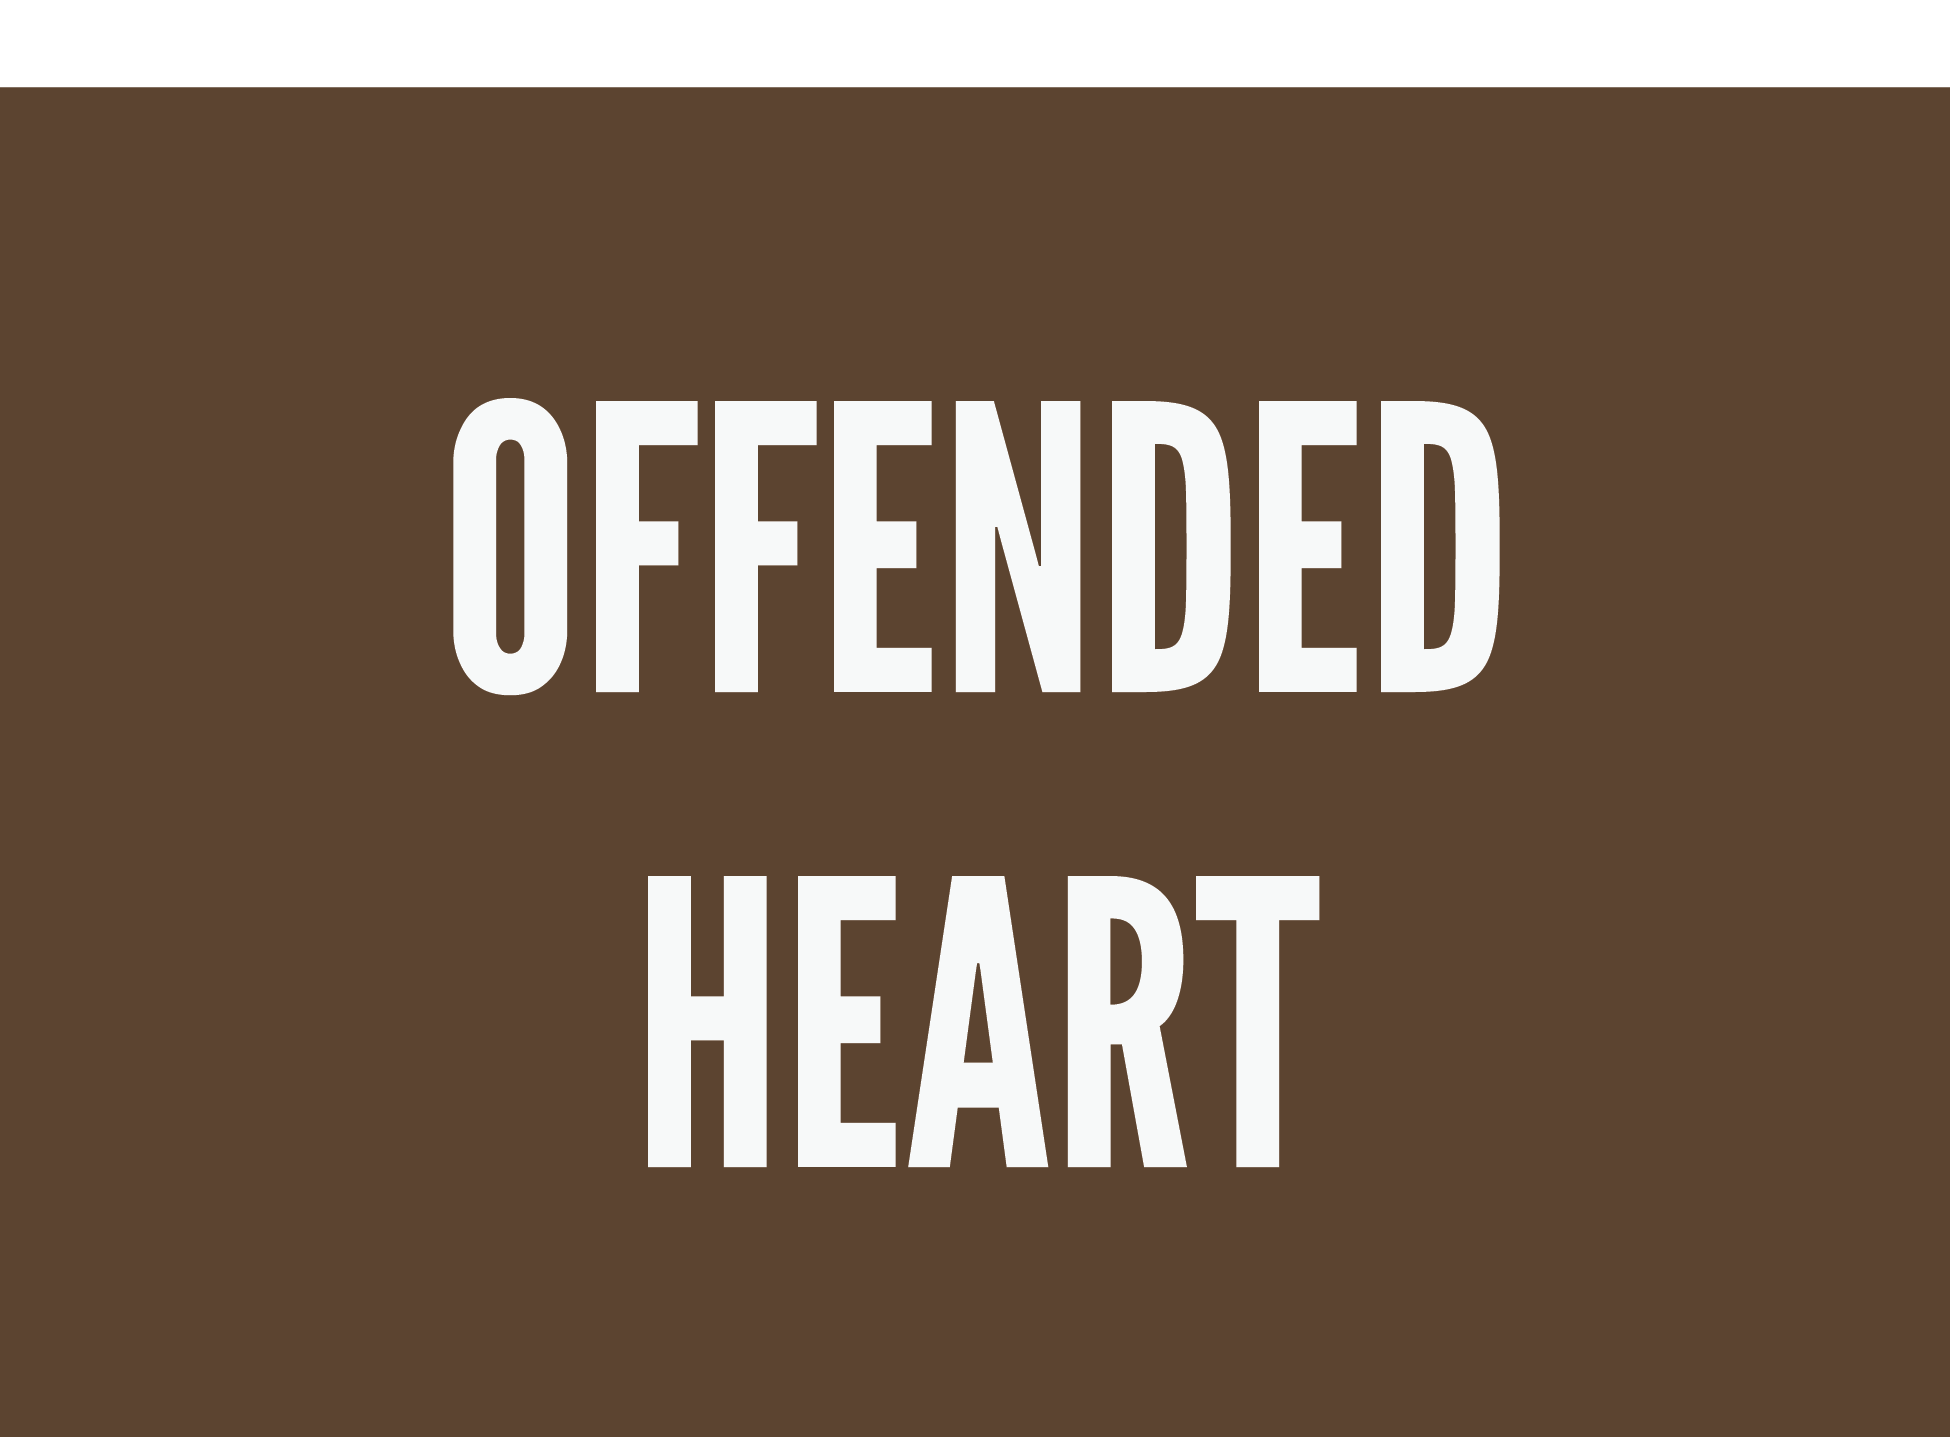 Offended Heart